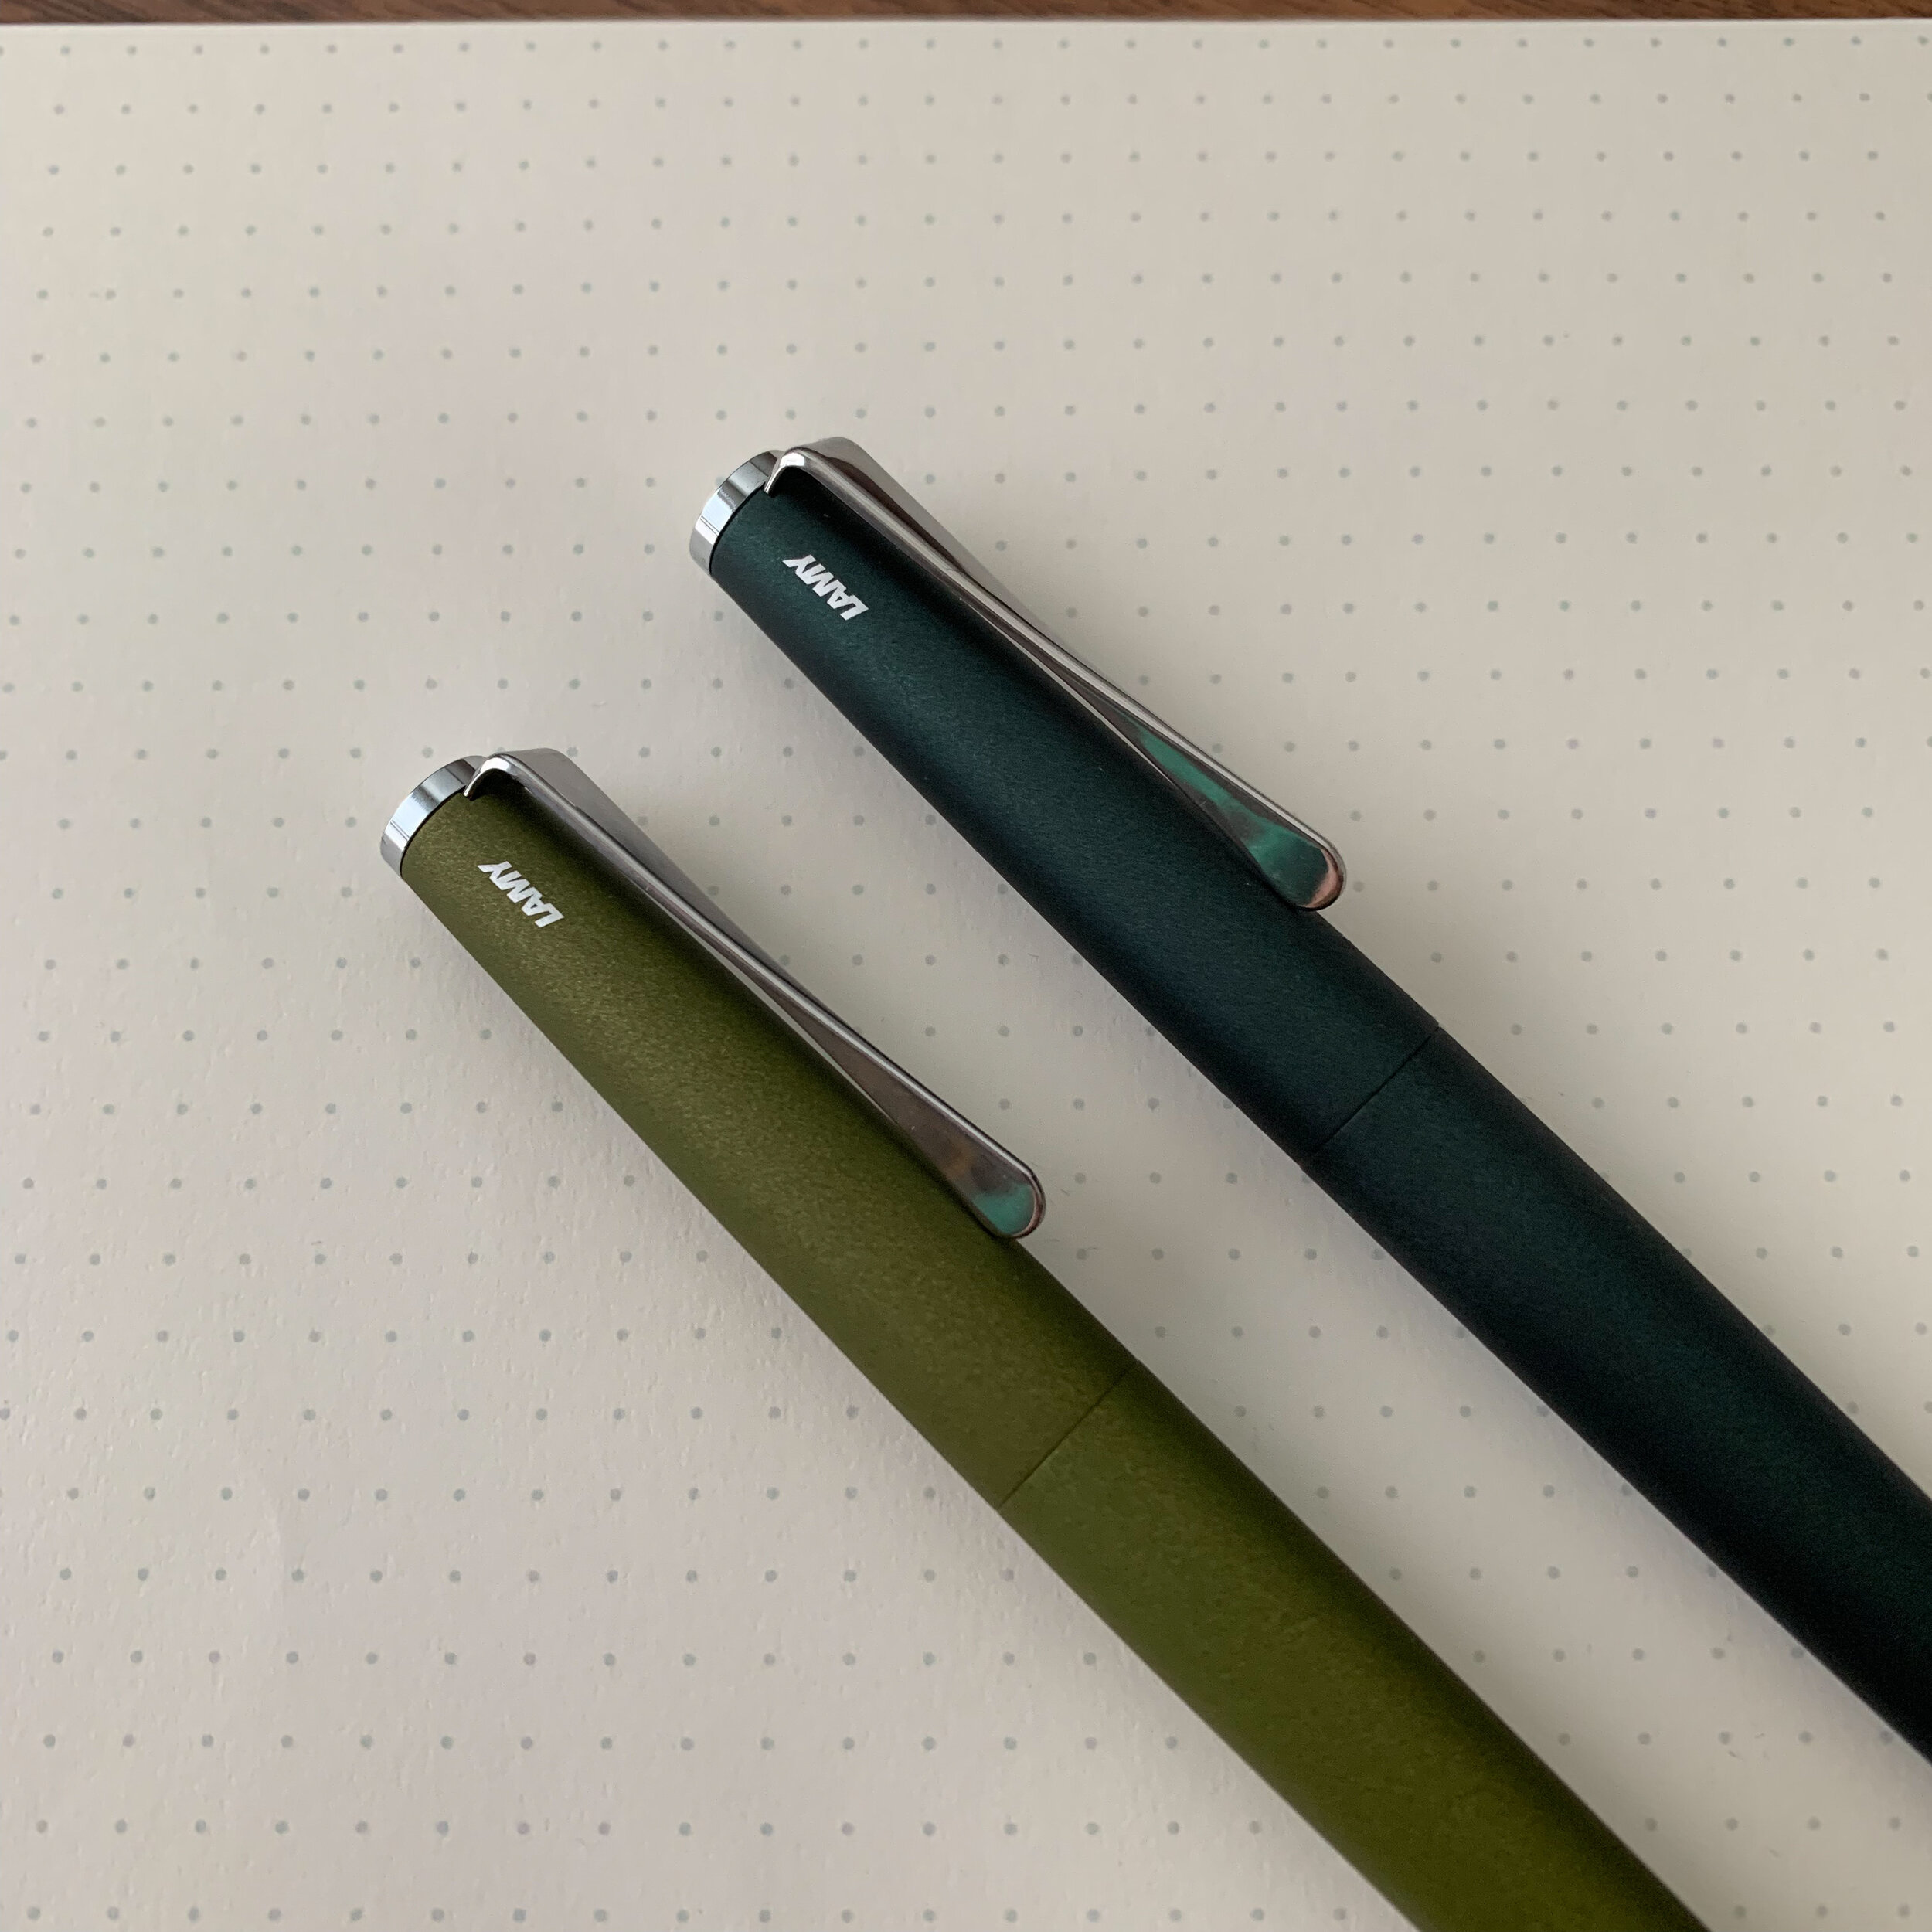 If you like dark green pens, the Lamy Studio has you covered. Shown here are the Olive Green (left) and Racing Green (right). Not pictured is my LX All Black, which is en route from the Netherlands as we speak.